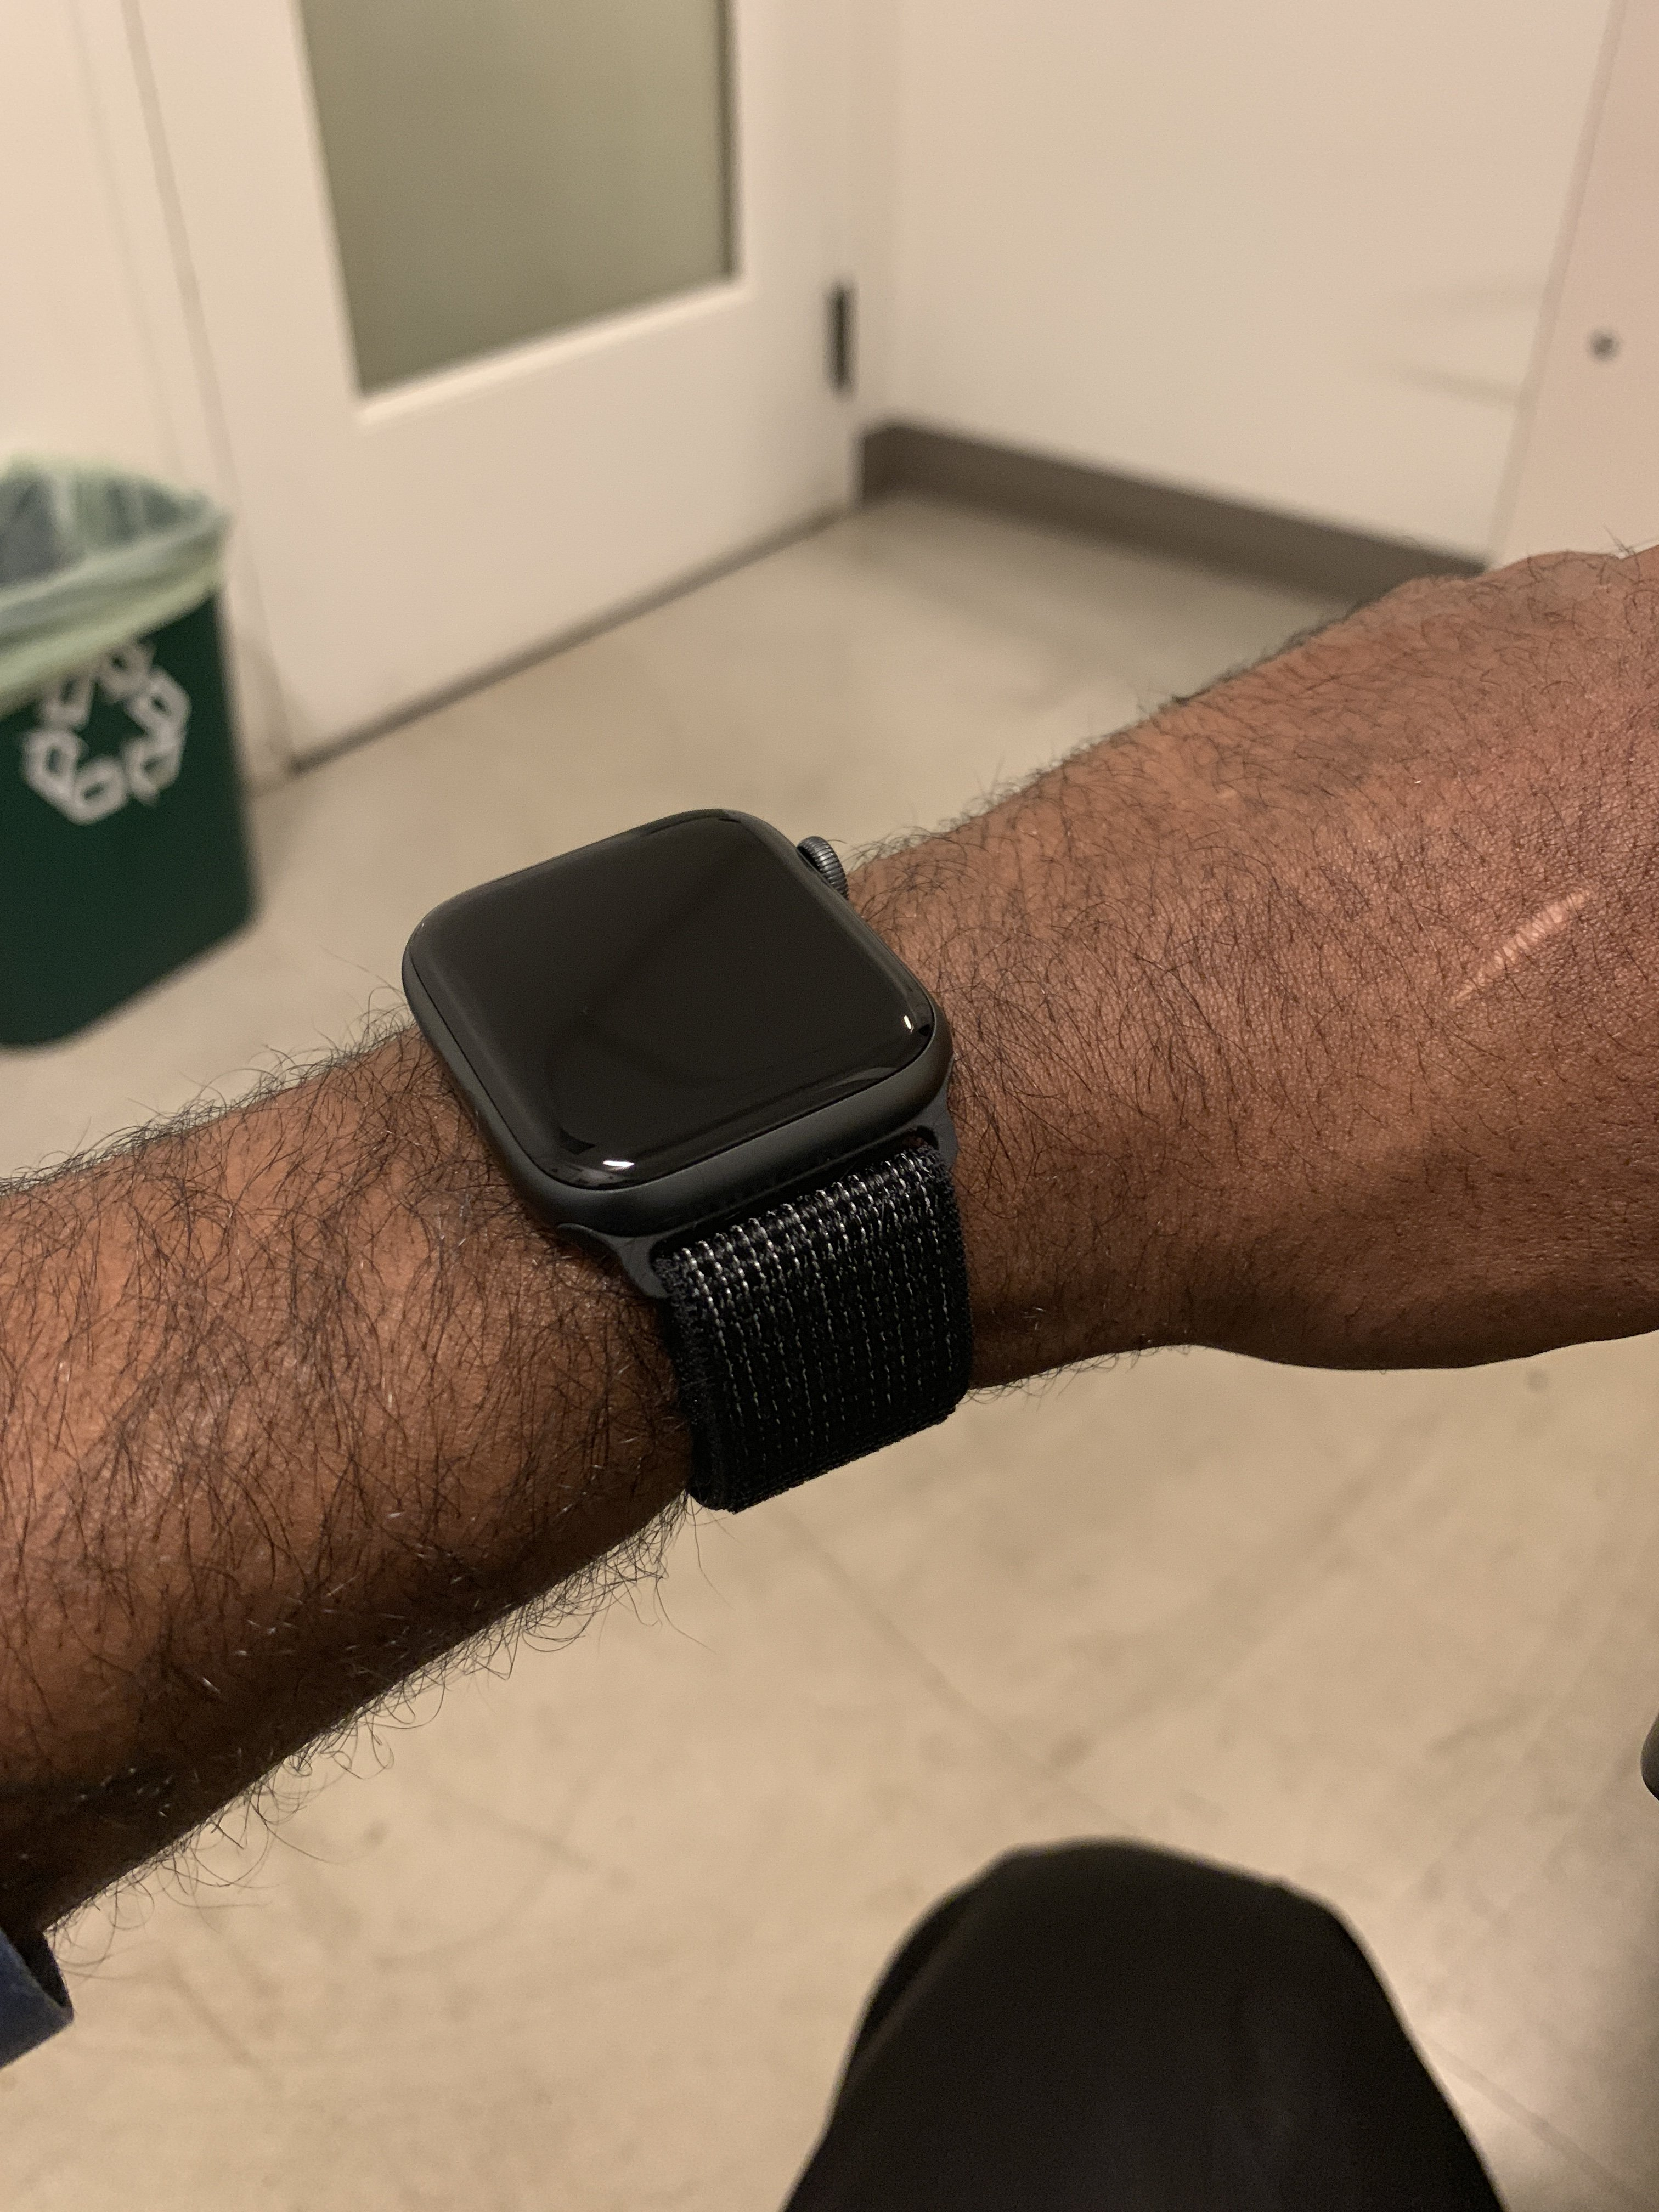 825c421f90a42f Chose info/modular watch Face. Couldn't find a setup that I could live with  on infograph and that's fine. The sport loop is smaller than previous one  and ...